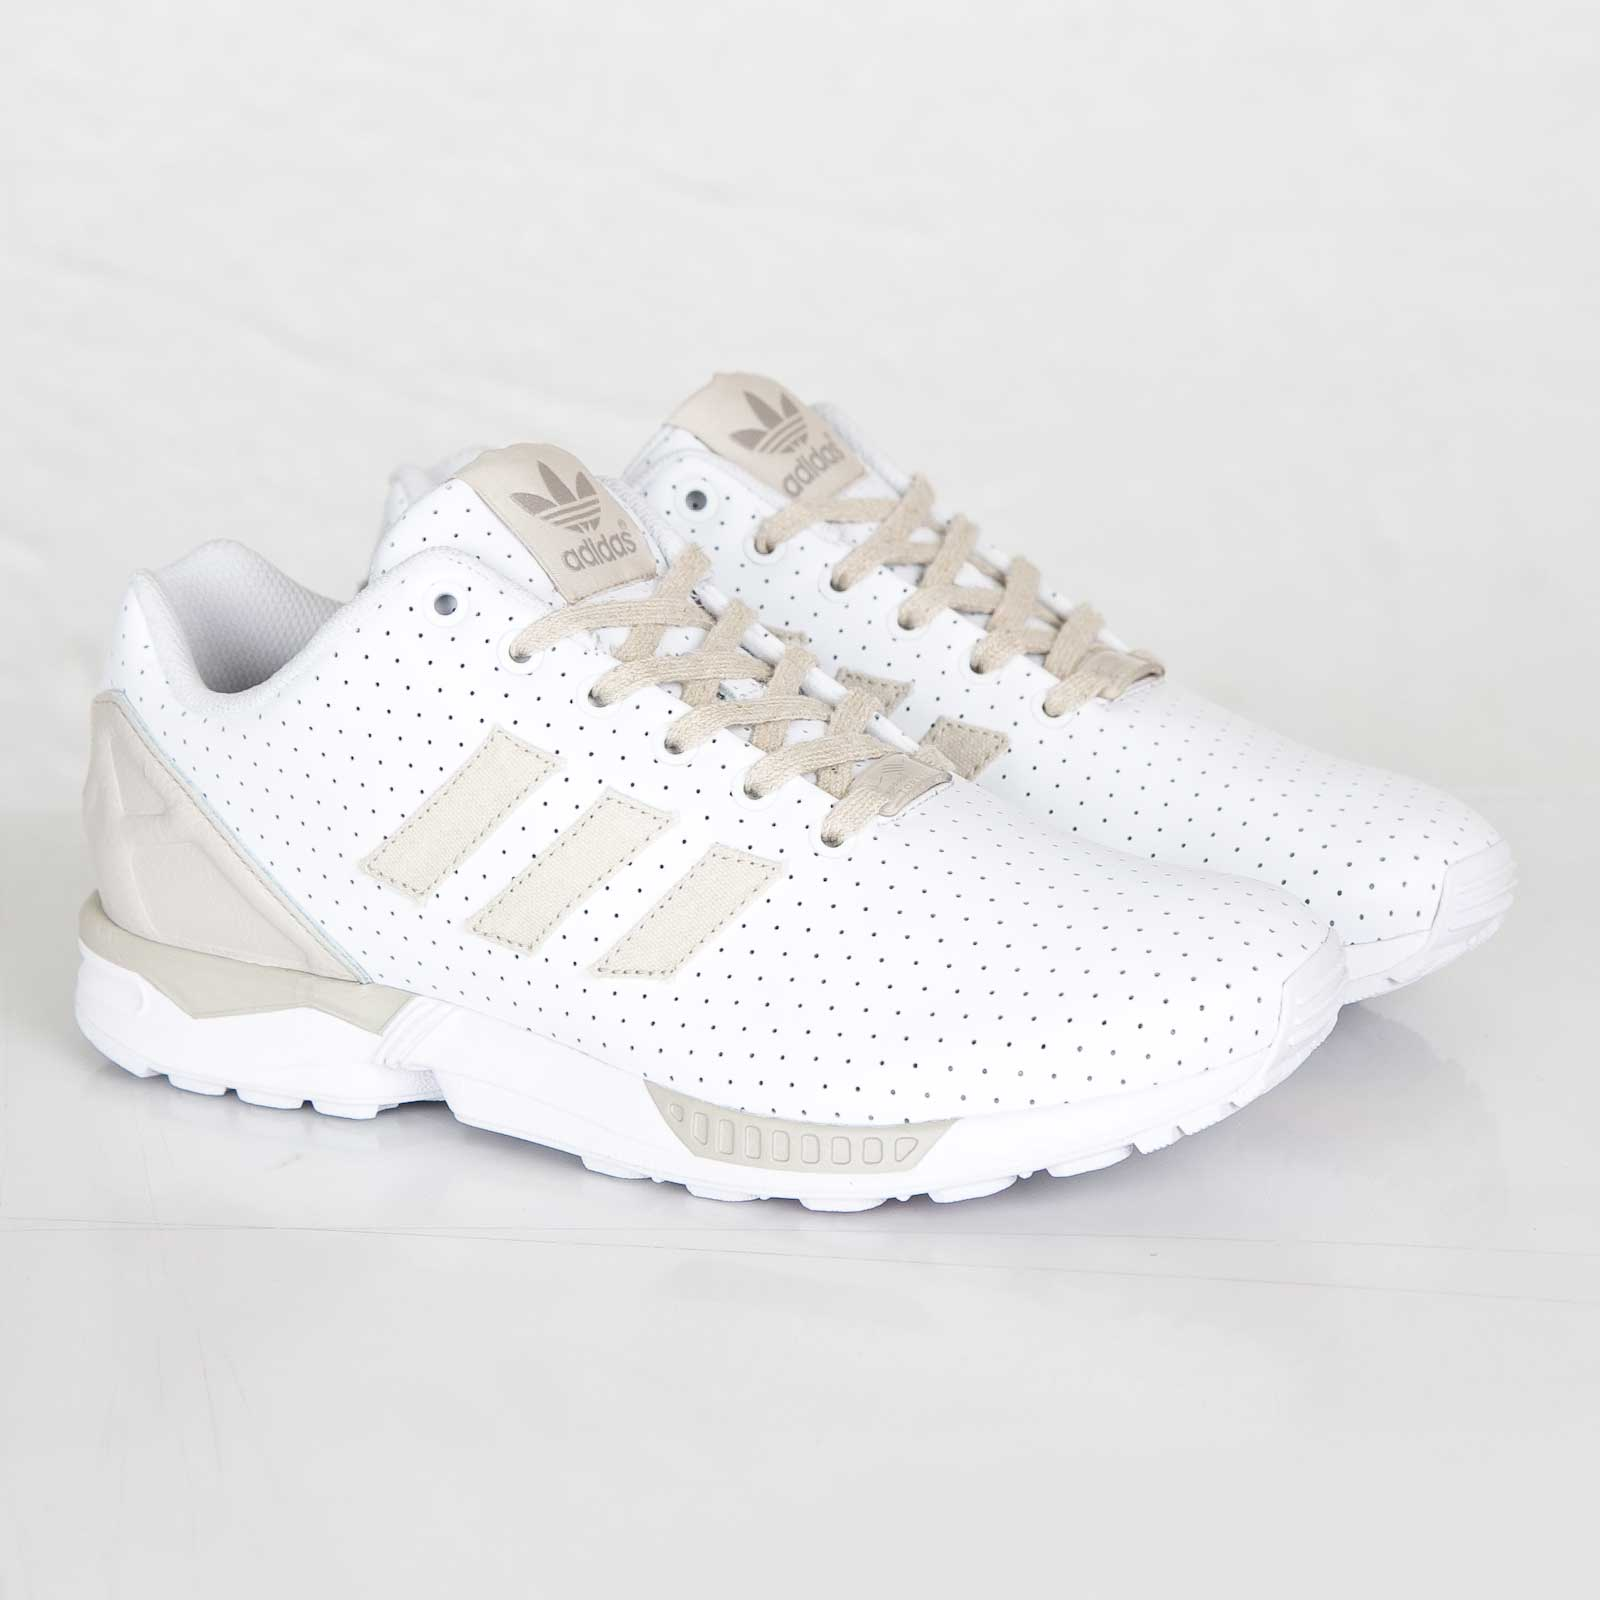 ADIDAS ZX FLUX Article no. B25763 FTW WhiteClear BrownLight brown Unisex SNS